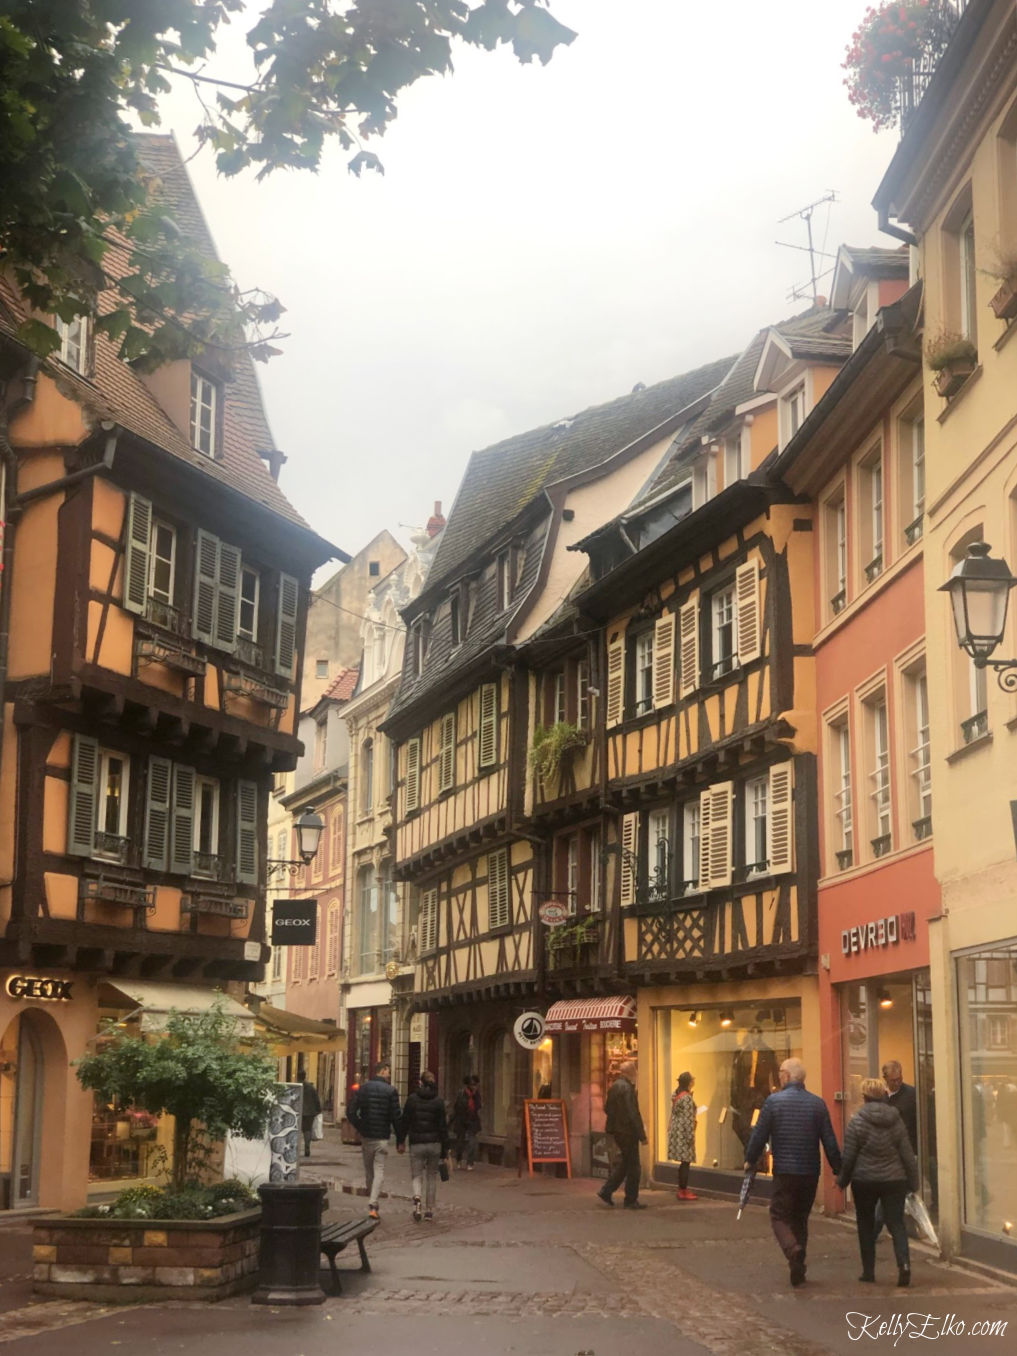 Colmar France has the most charming half timbered houses kellyelko.com #halftimber #france #colmar #luxurytravel #travelblog #travelphotography